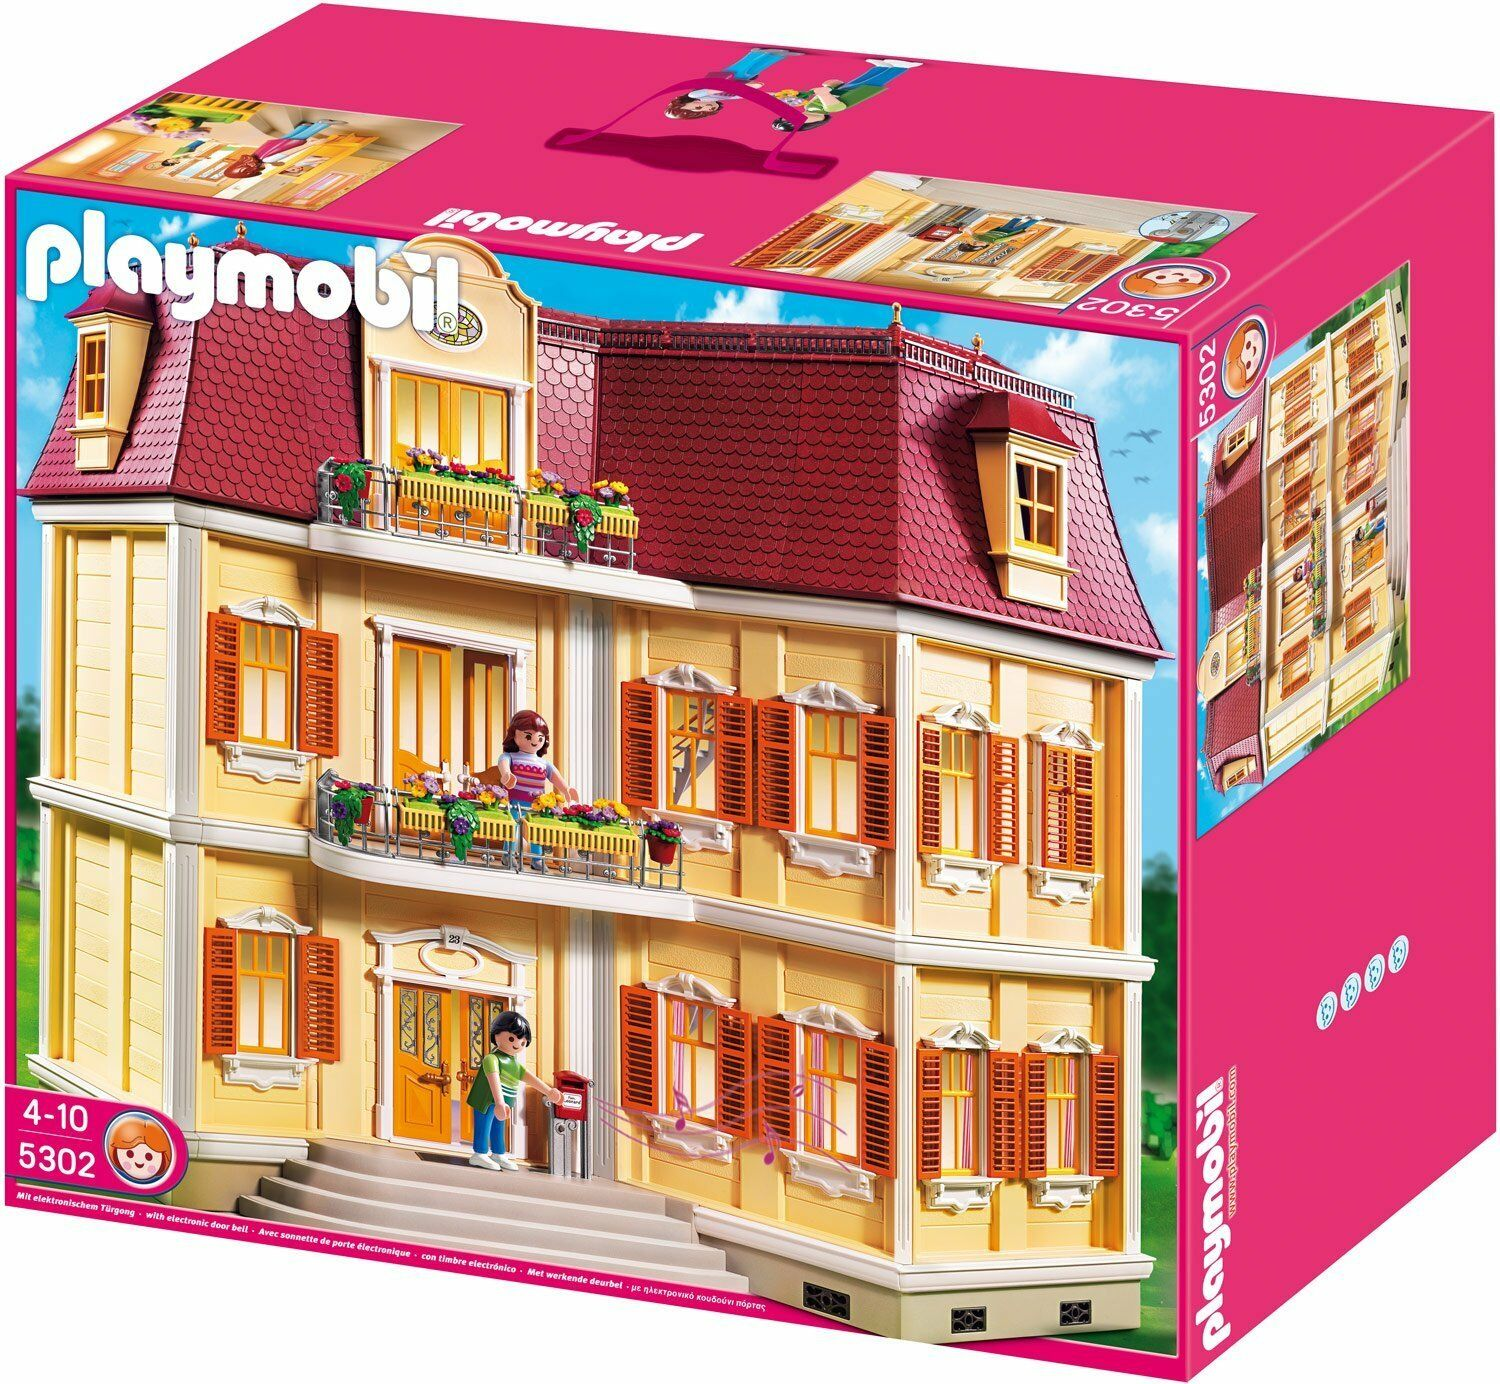 Dollhouse Playmobil Playmobil 5302 Large Grand Mansion Dollhouse